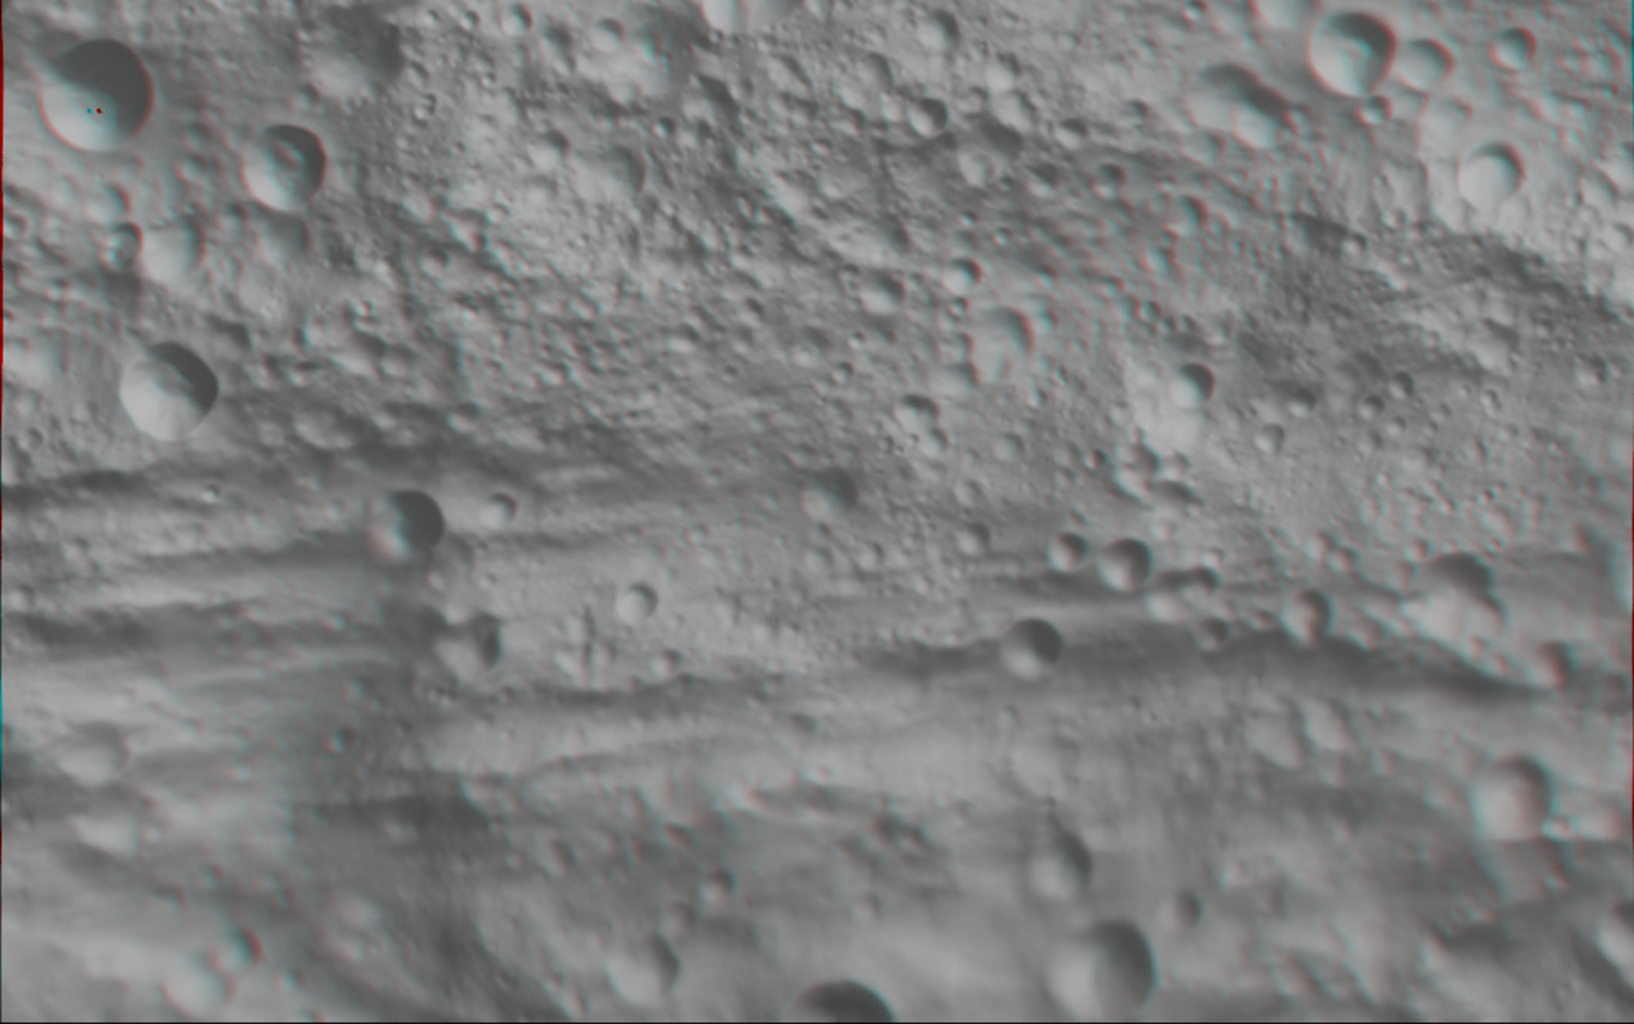 This anaglyph image shows the topography of part of Vesta's equatorial region; this uneven topography is mostly due to large, ancient, rather degraded ruin eroded craters. You need 3-D glasses to view this image.